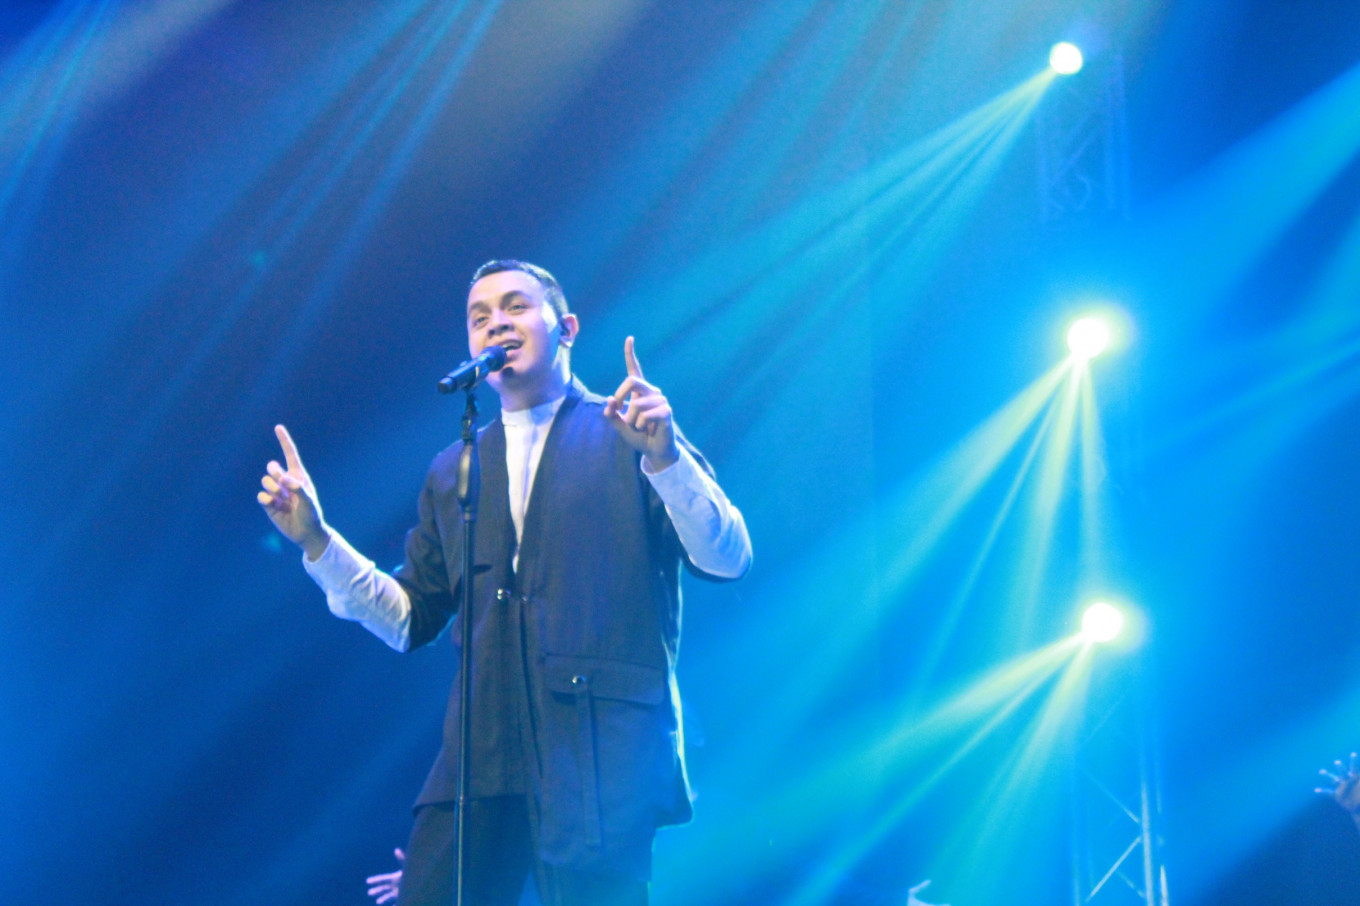 Tulus exudes genuineness, love for fans during 'One Intimate Night' in Jakarta